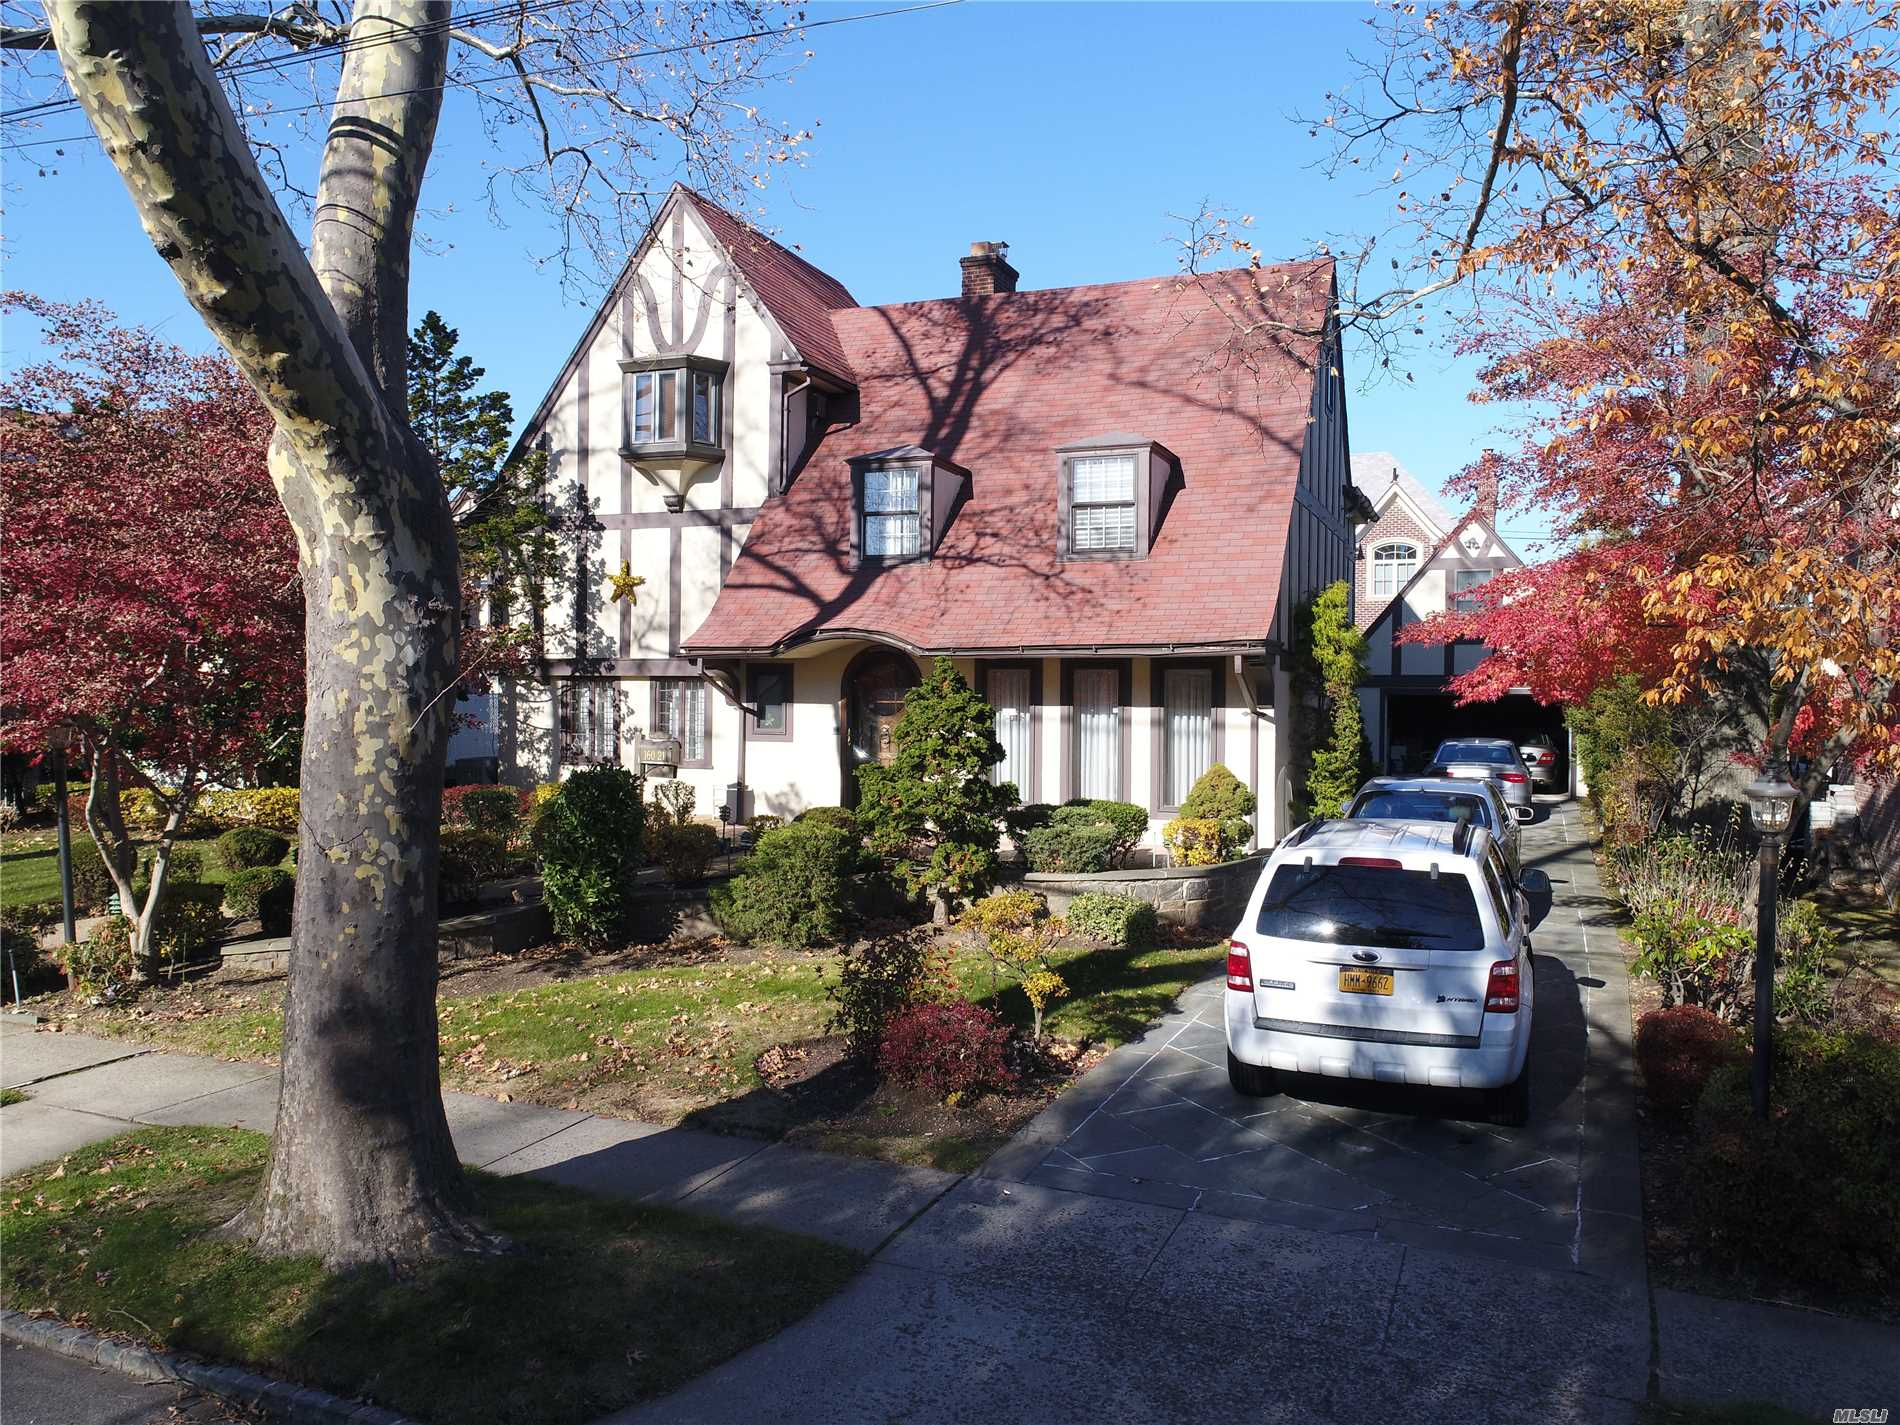 80 X 100 Lot True English Tudor In Prestigious Robinwood Section Of Beechhurst! Perfect Blending Of Rich Architecture With Today's Luxurious Amenities. Grand Living Room Cathedral Ceiling Features Restored Wood Beams, Restored Stained Glass Windows, Real Wood Burning Fireplace, Fabulous Eat-In-Kitchen, A Superb Spacious Backyard. Master Bedroom Suite With Two Walk-In-Closets, Master Bathroom With Jacuzzi. Ose In Basement. A Perfect Custom Home For Living & Entertaining!